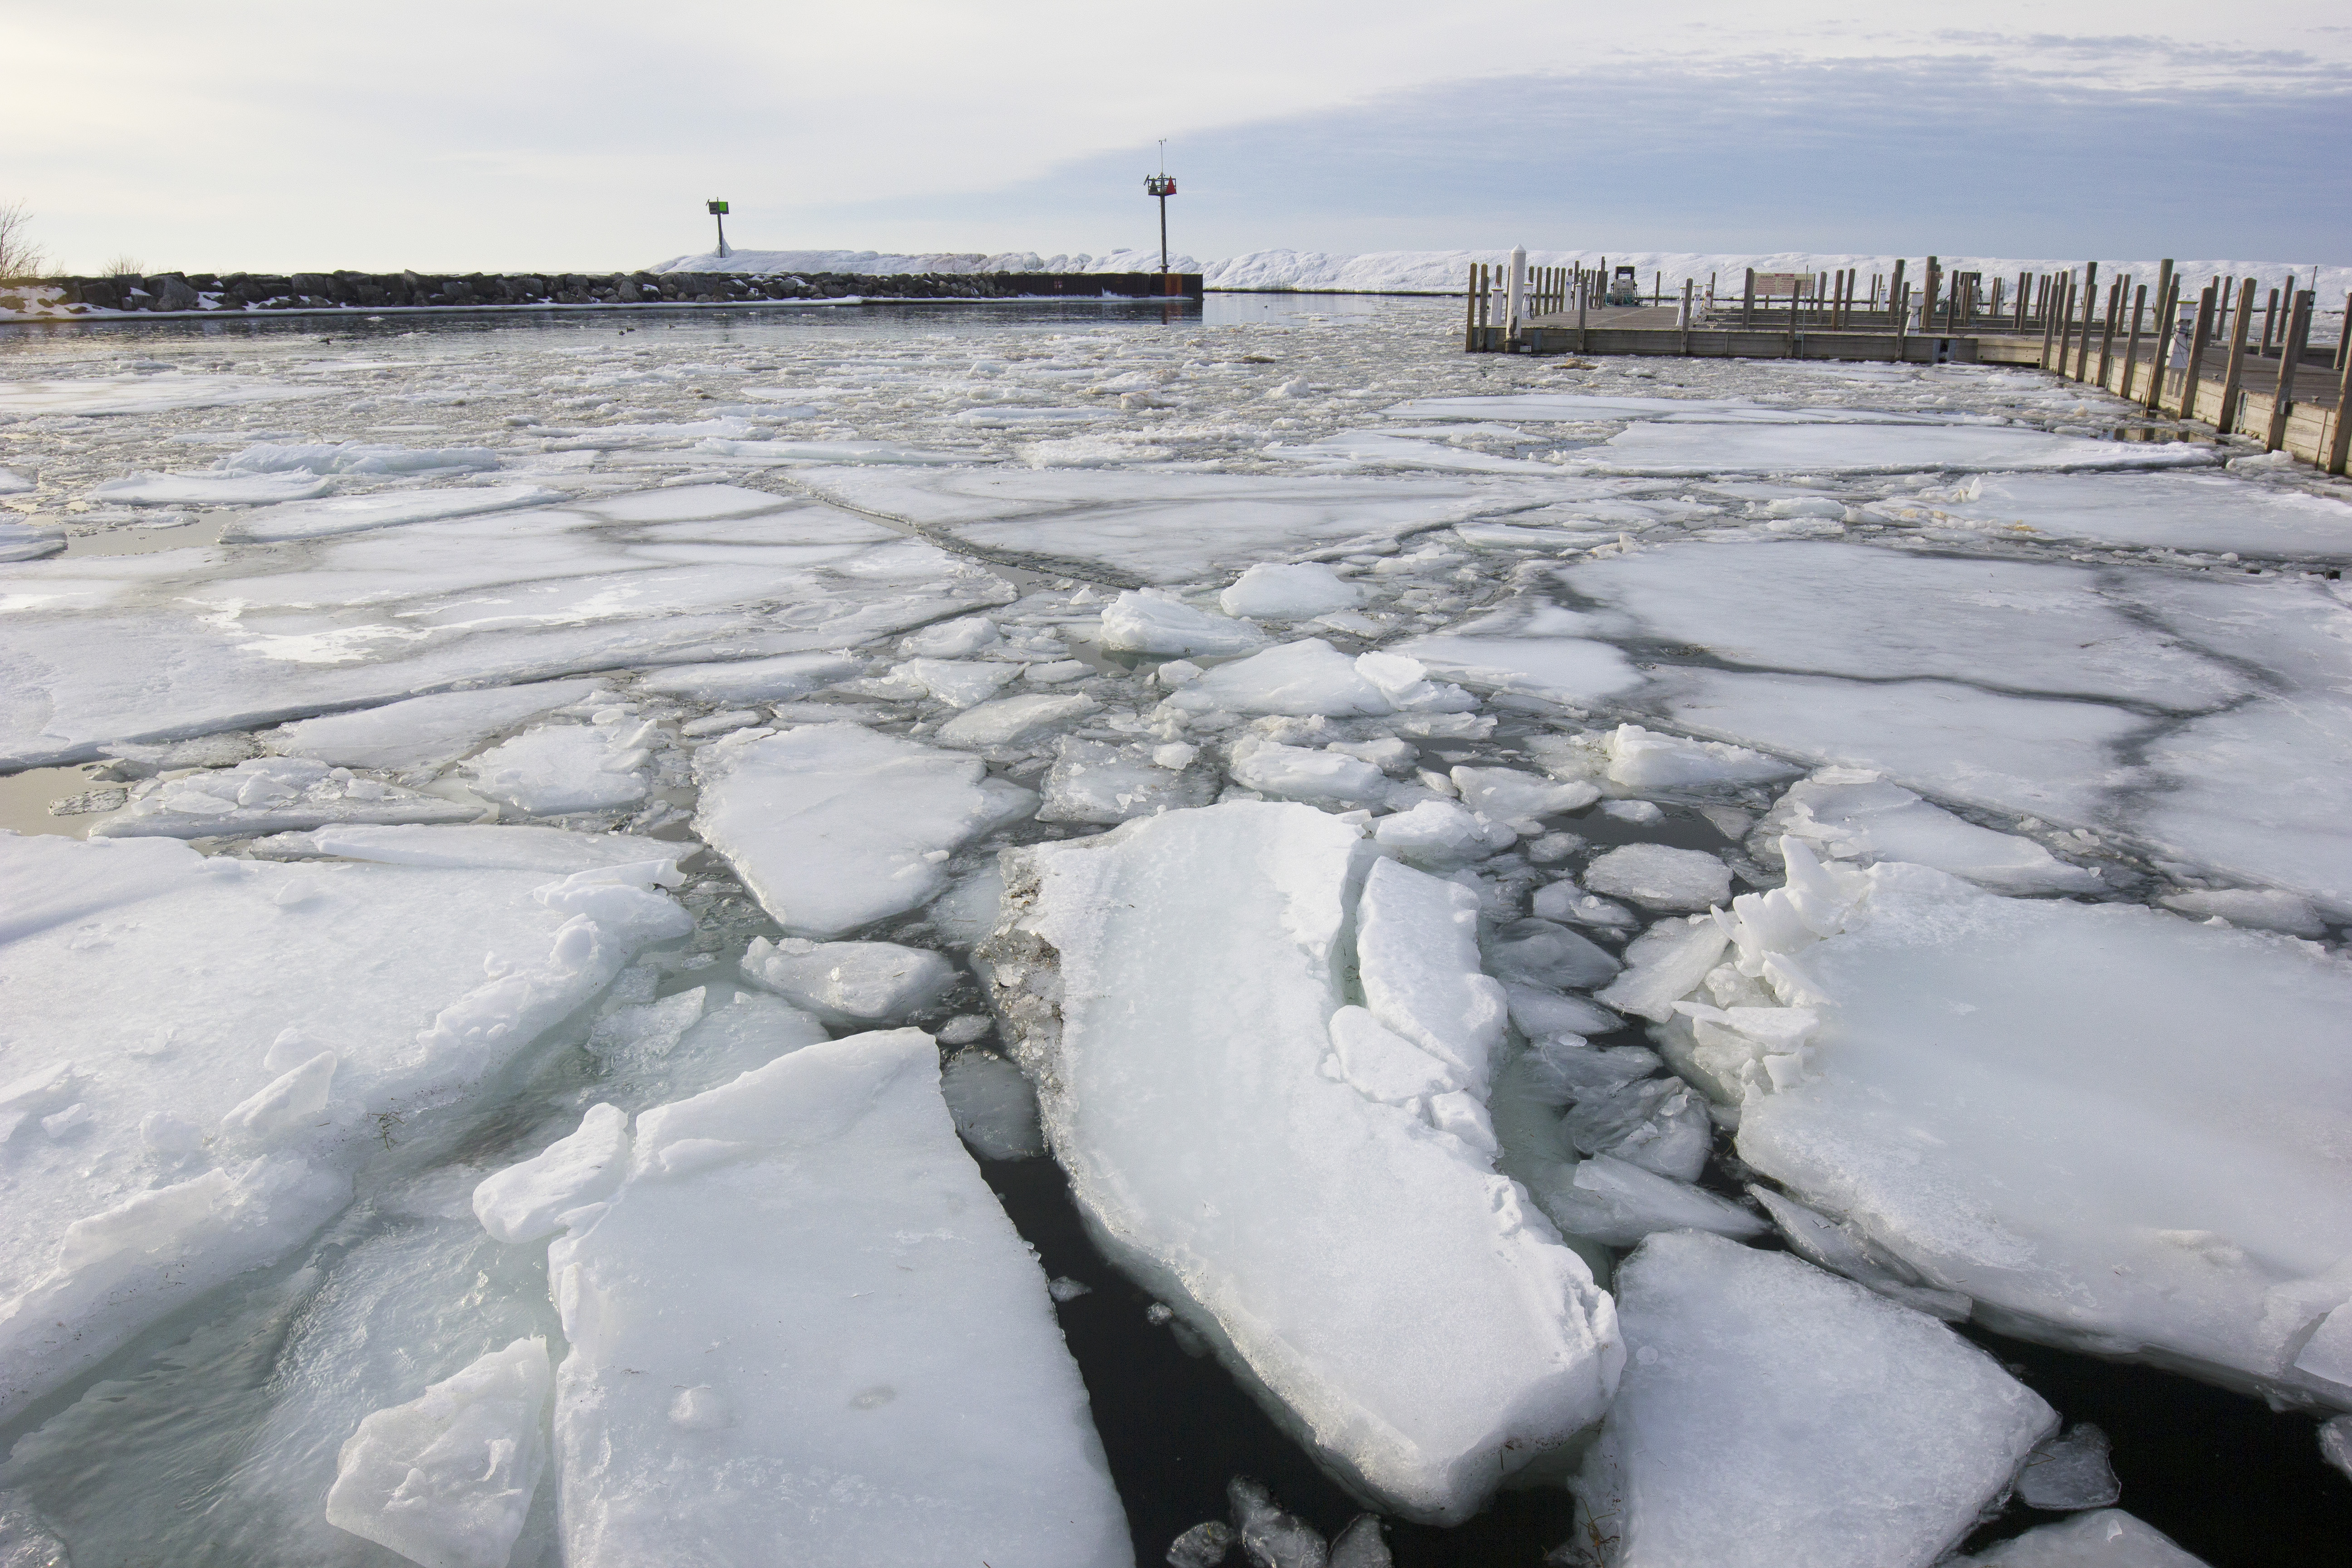 Broken ice near the dock at Fishtown